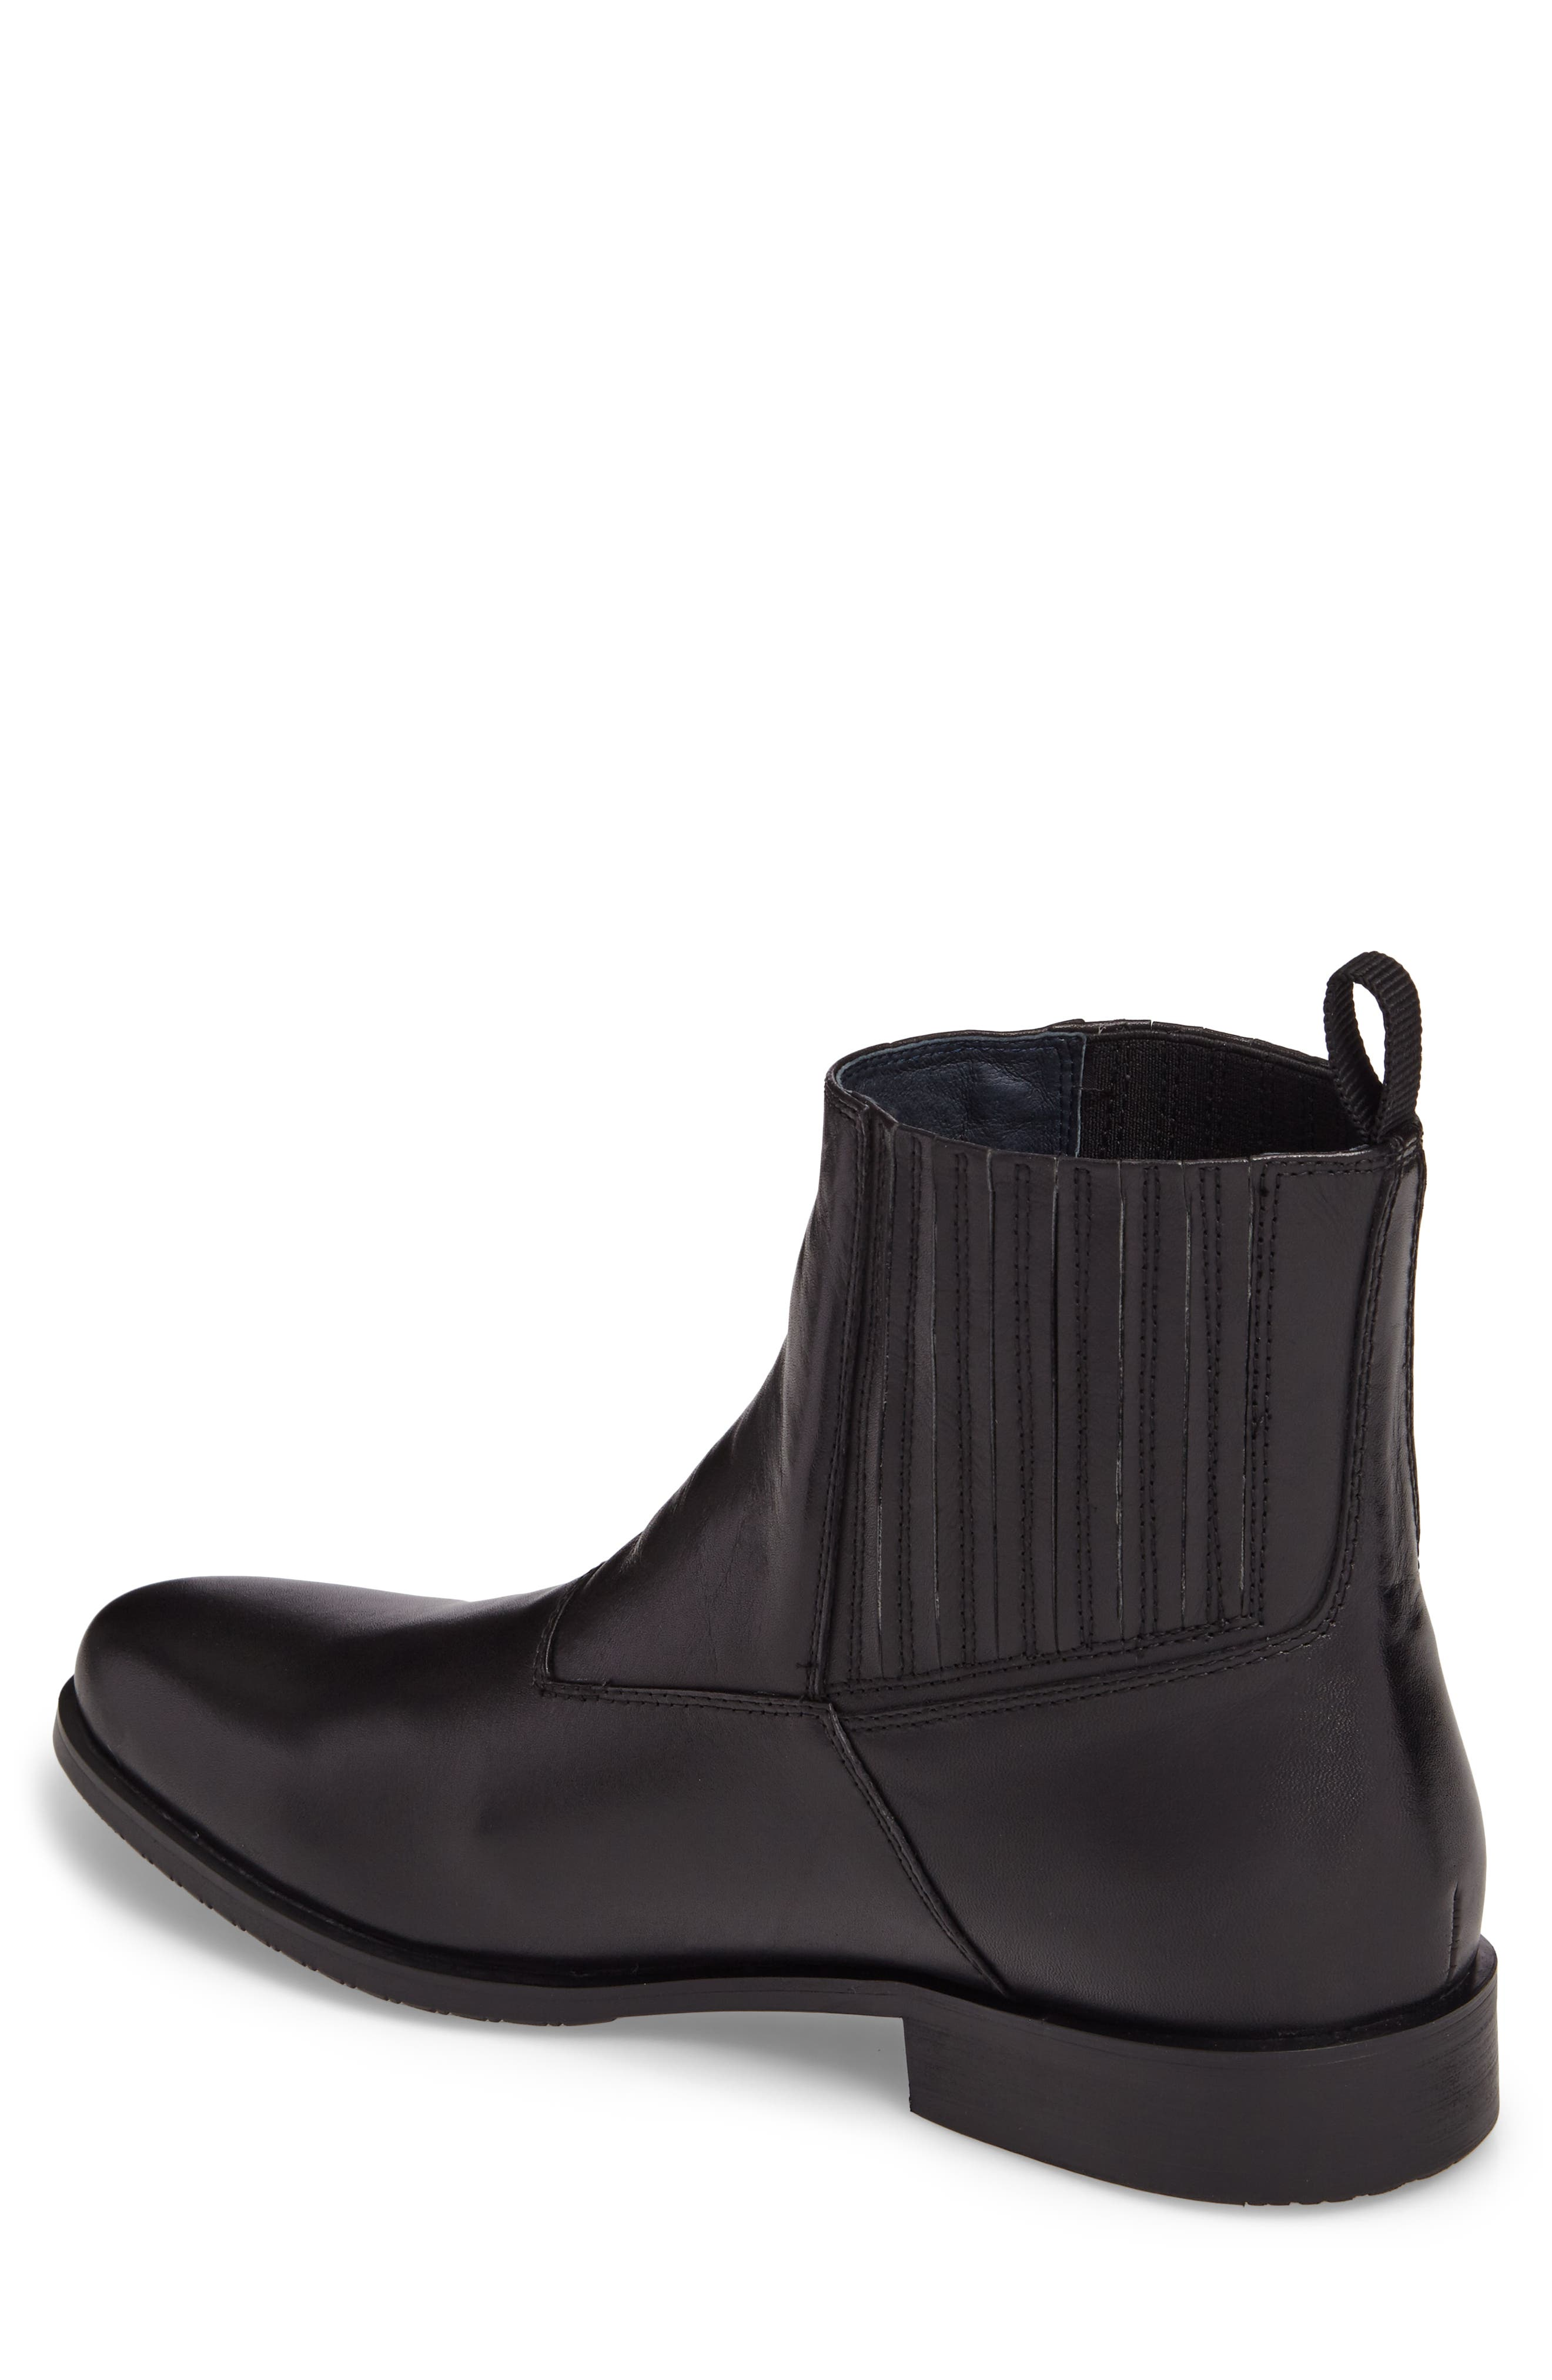 Guardi Zip Boot,                             Alternate thumbnail 2, color,                             Black Leather